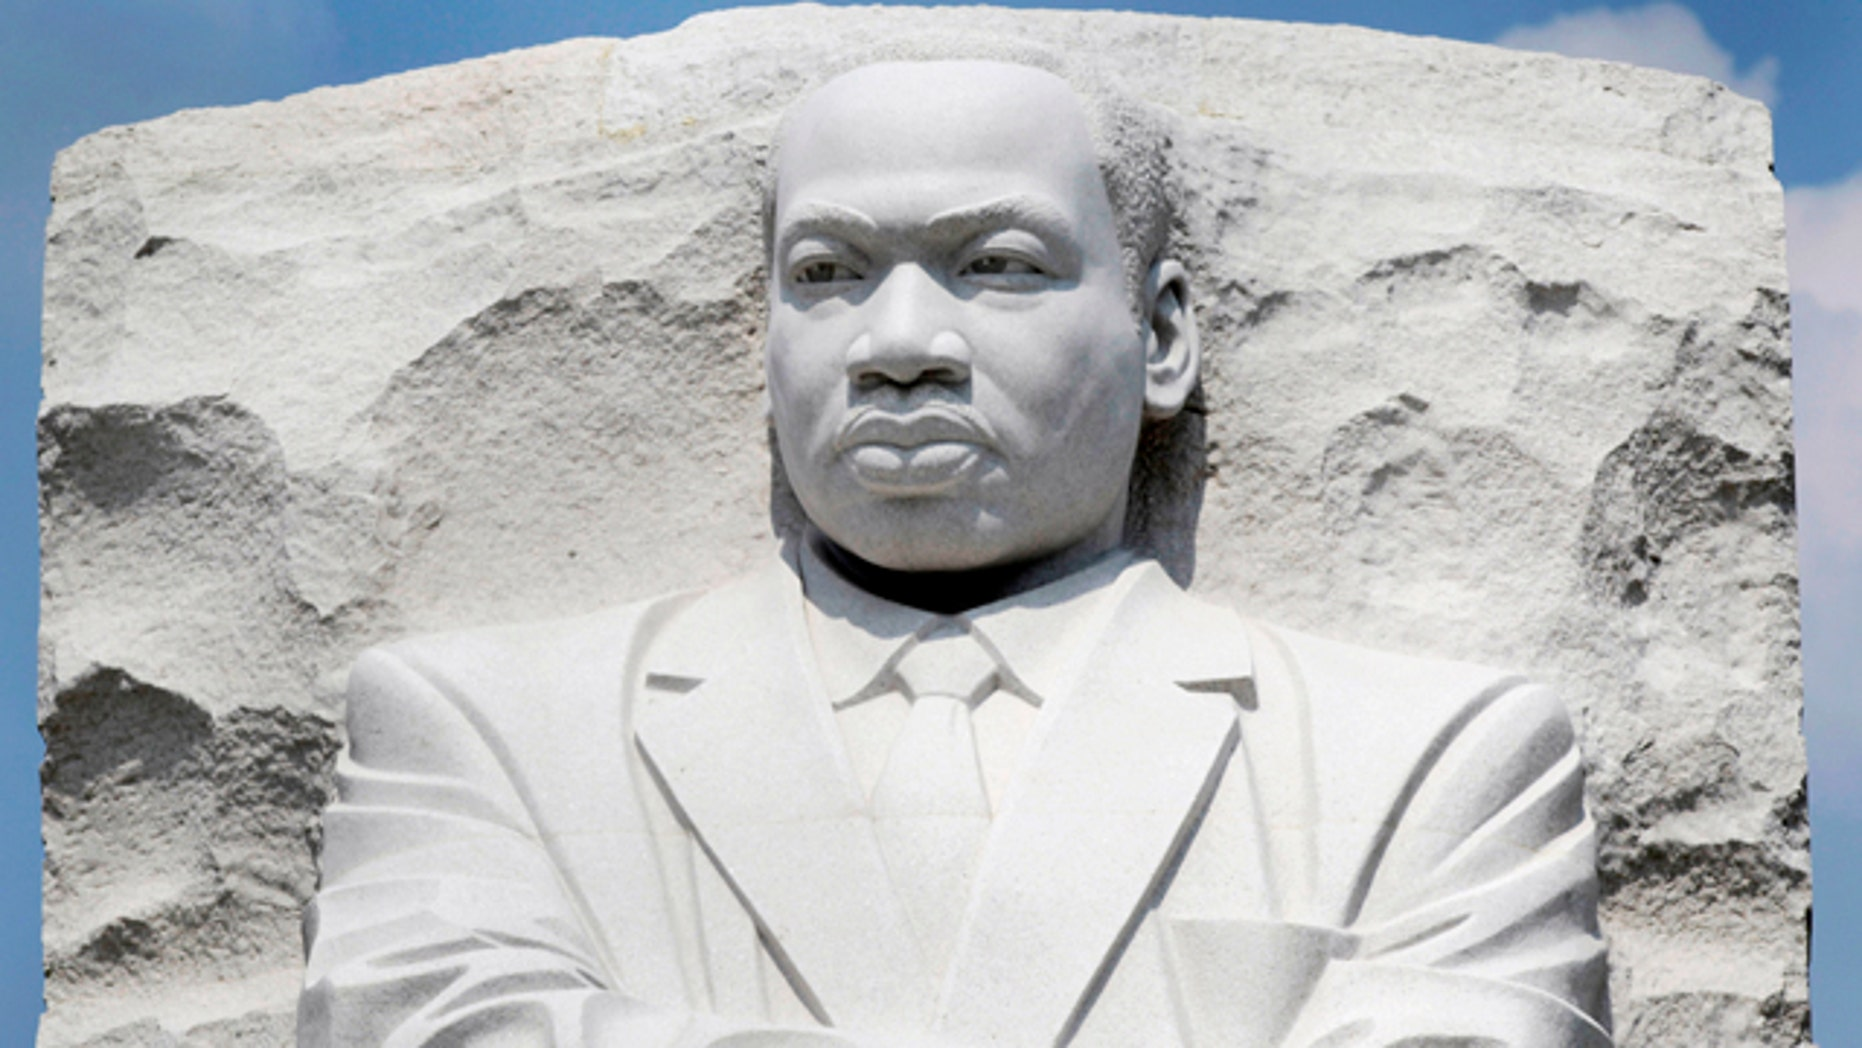 Aug. 21: A part of the Rev. Martin Luther King Jr. Memorial is seen on the National Mall in Washington. The memorial to the late civil rights leader is scheduled to be dedicated later this week.